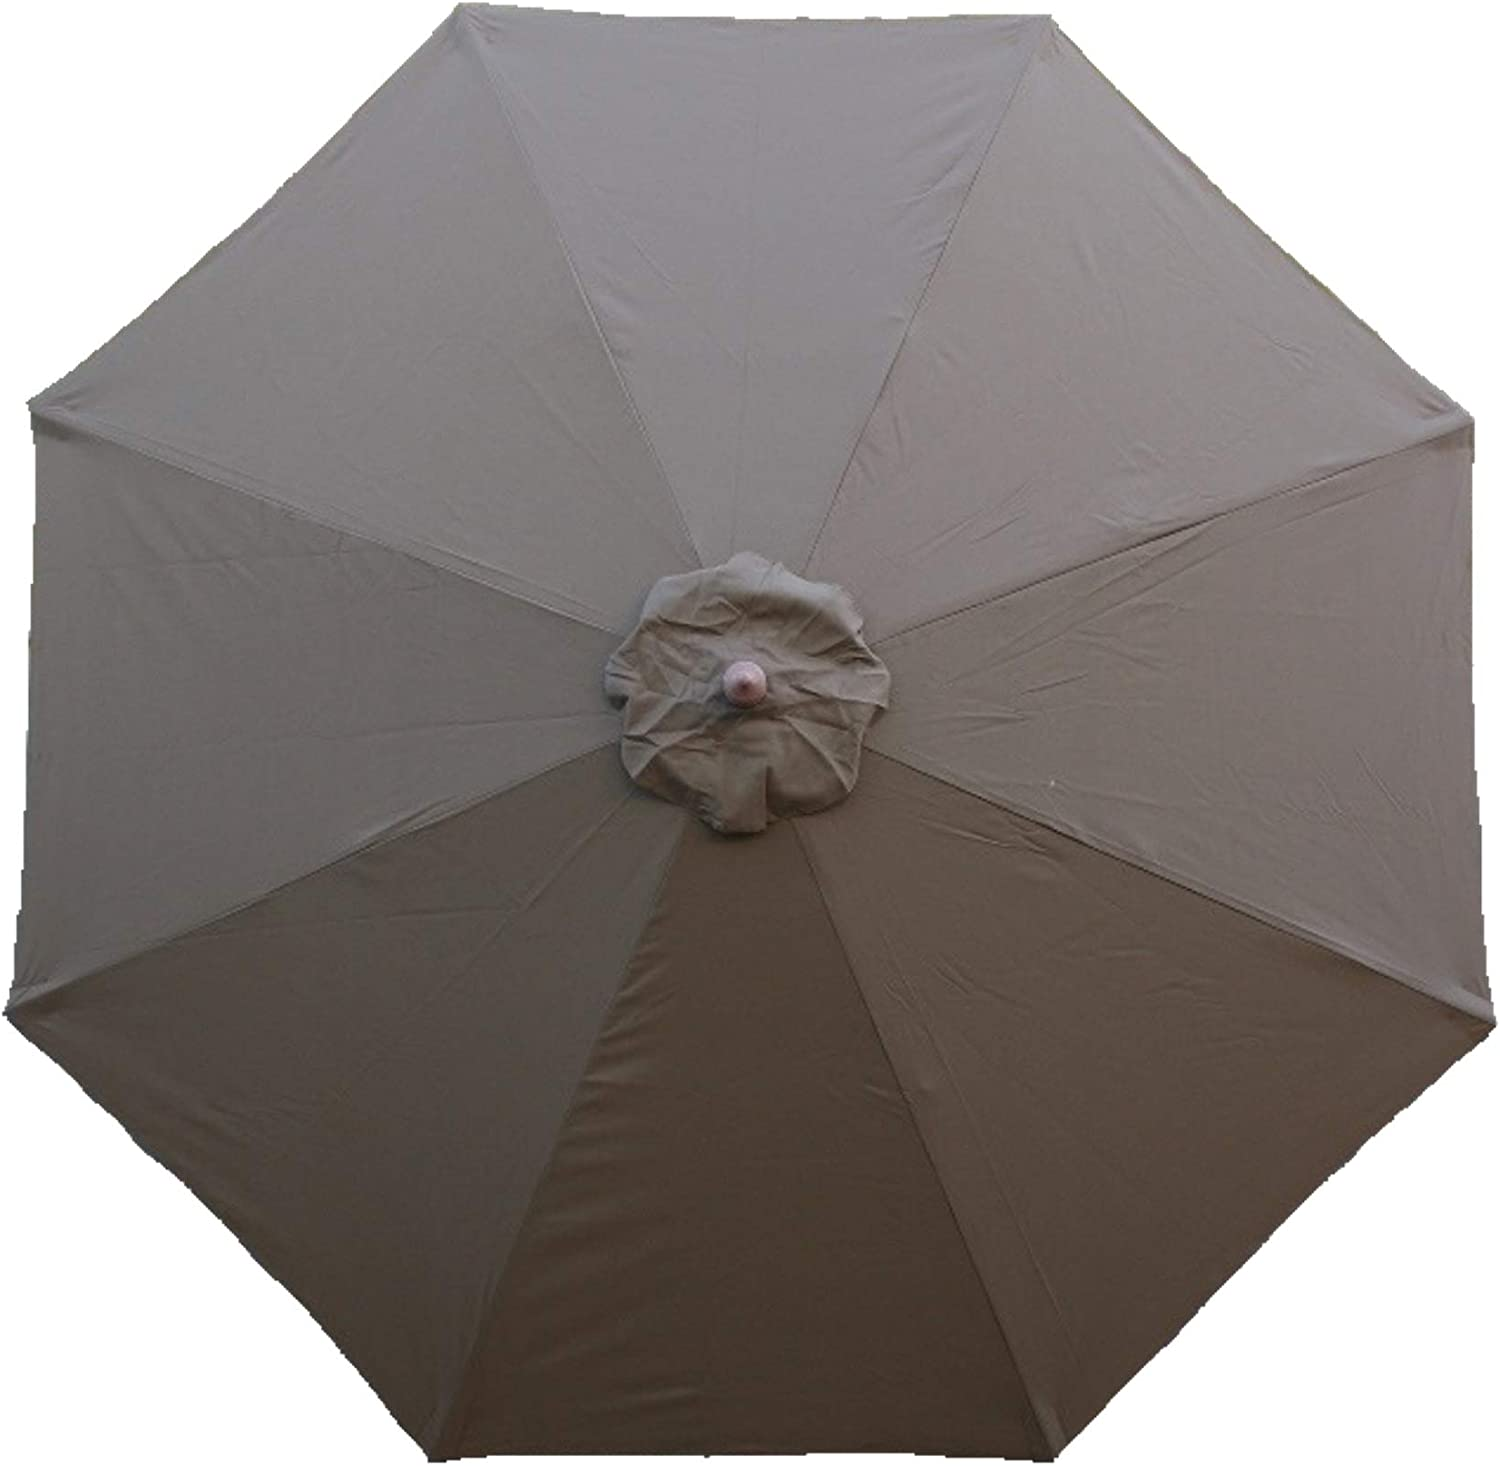 Formosa Covers 9ft Umbrella Replacement Canopy 8 Ribs in Cocoa Canopy Only